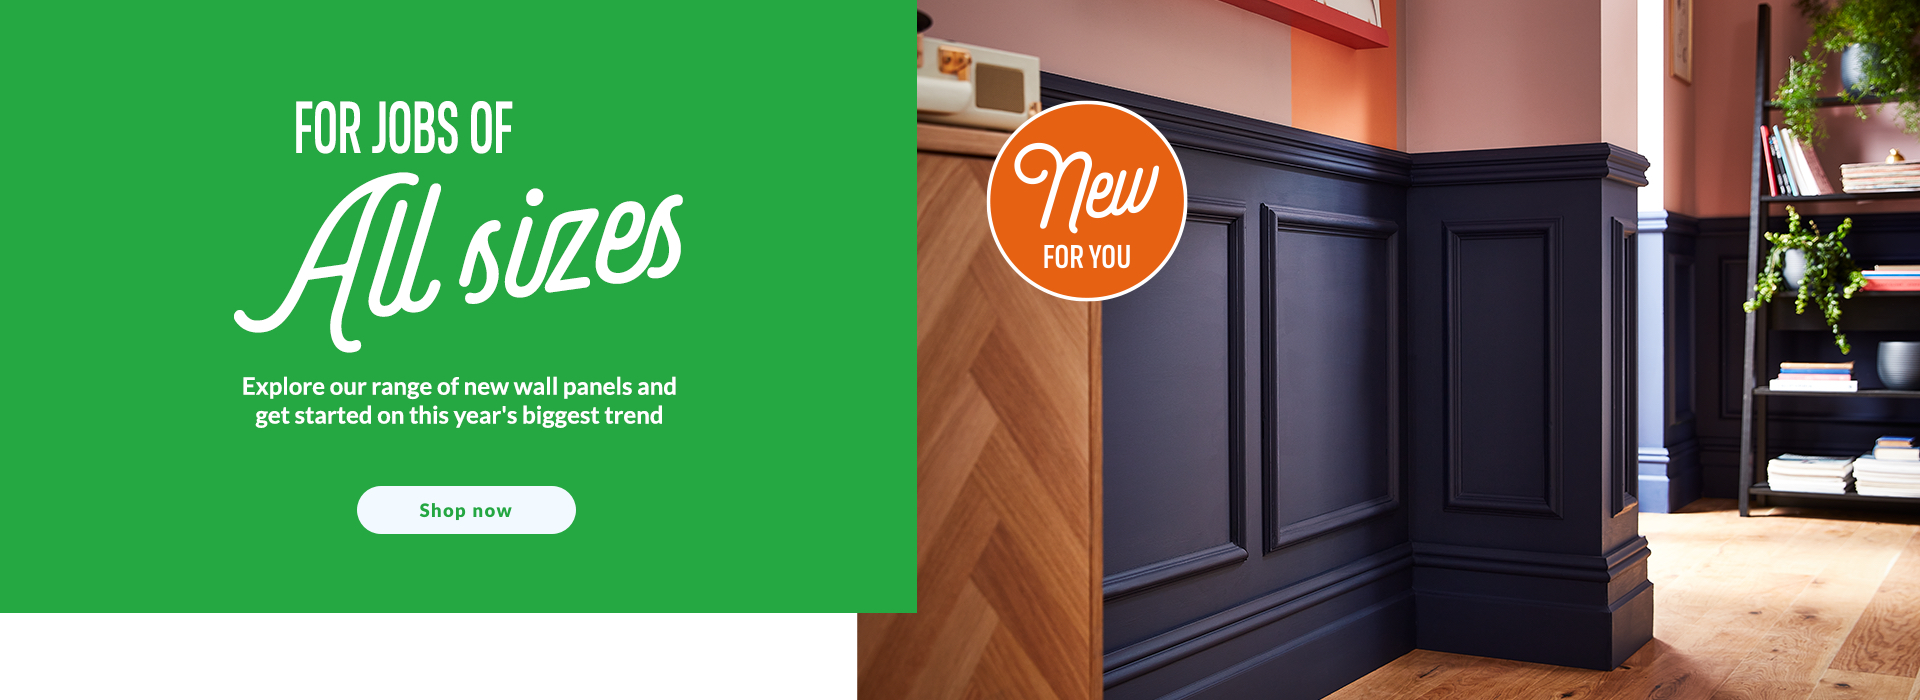 New Year, New list of jobs. Explore our range of new wall panels and get started on this year's biggest trend. Shop now. New for you